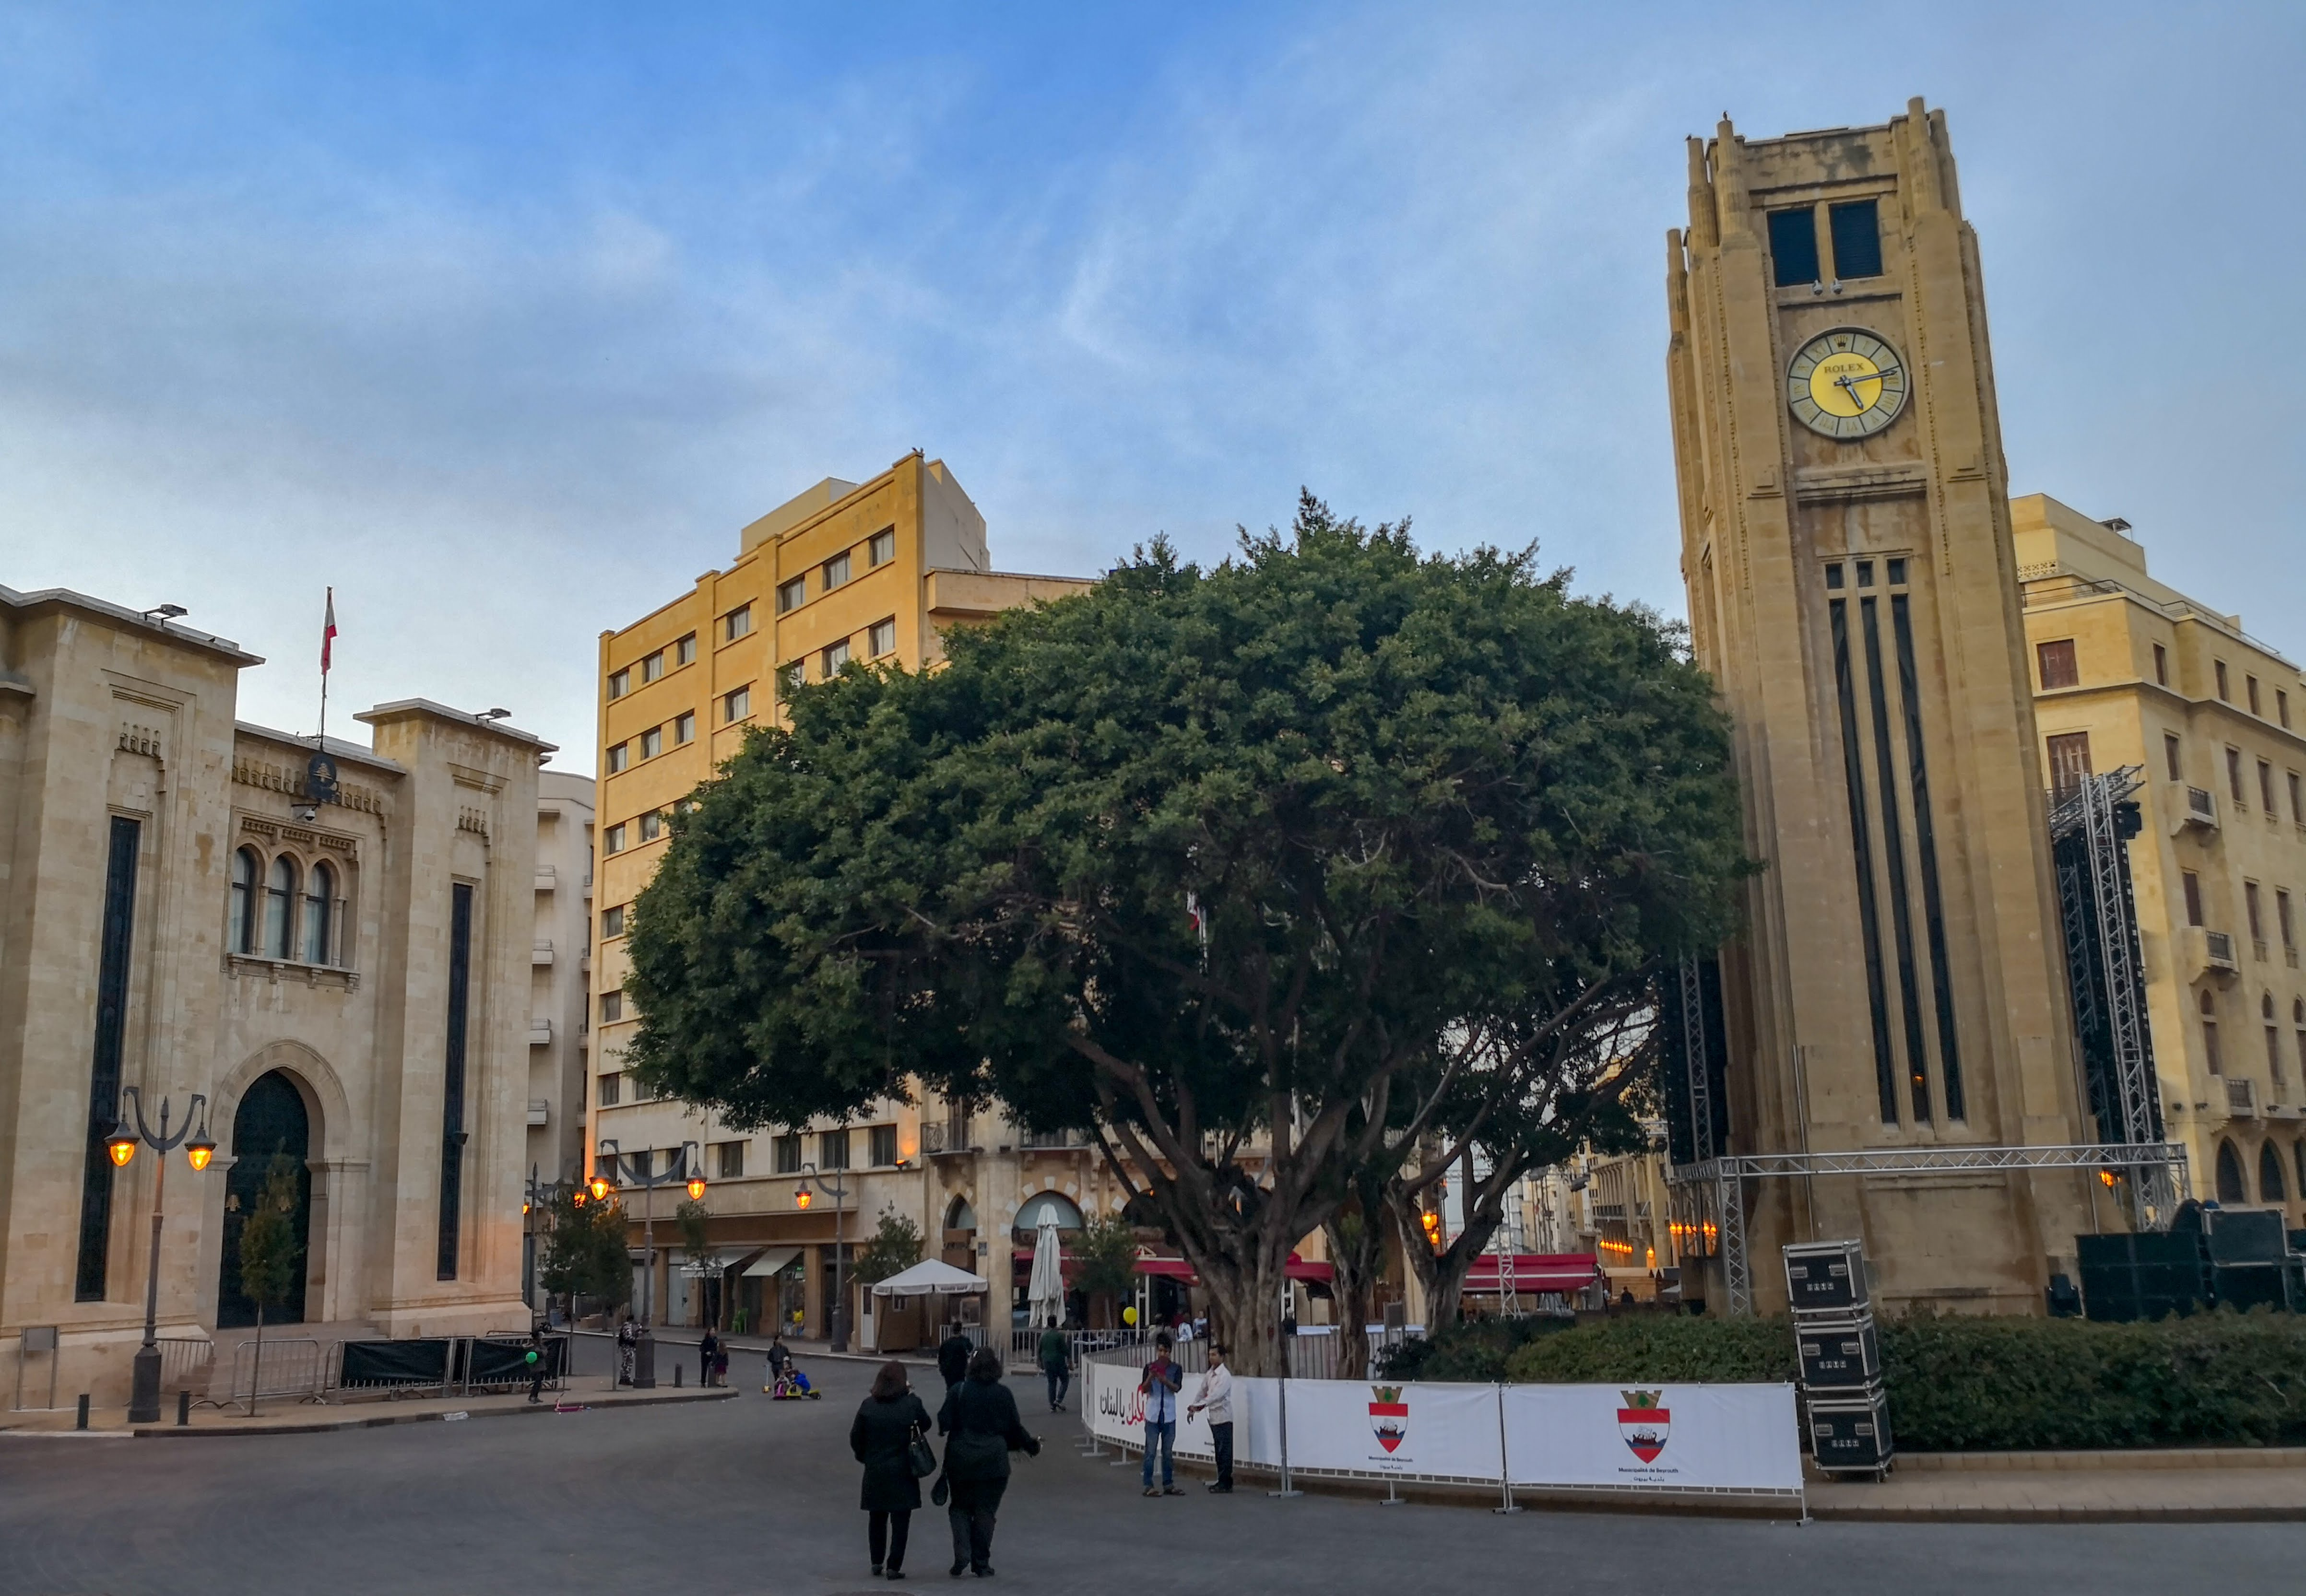 Downtown Beirut - Nijmeh Square